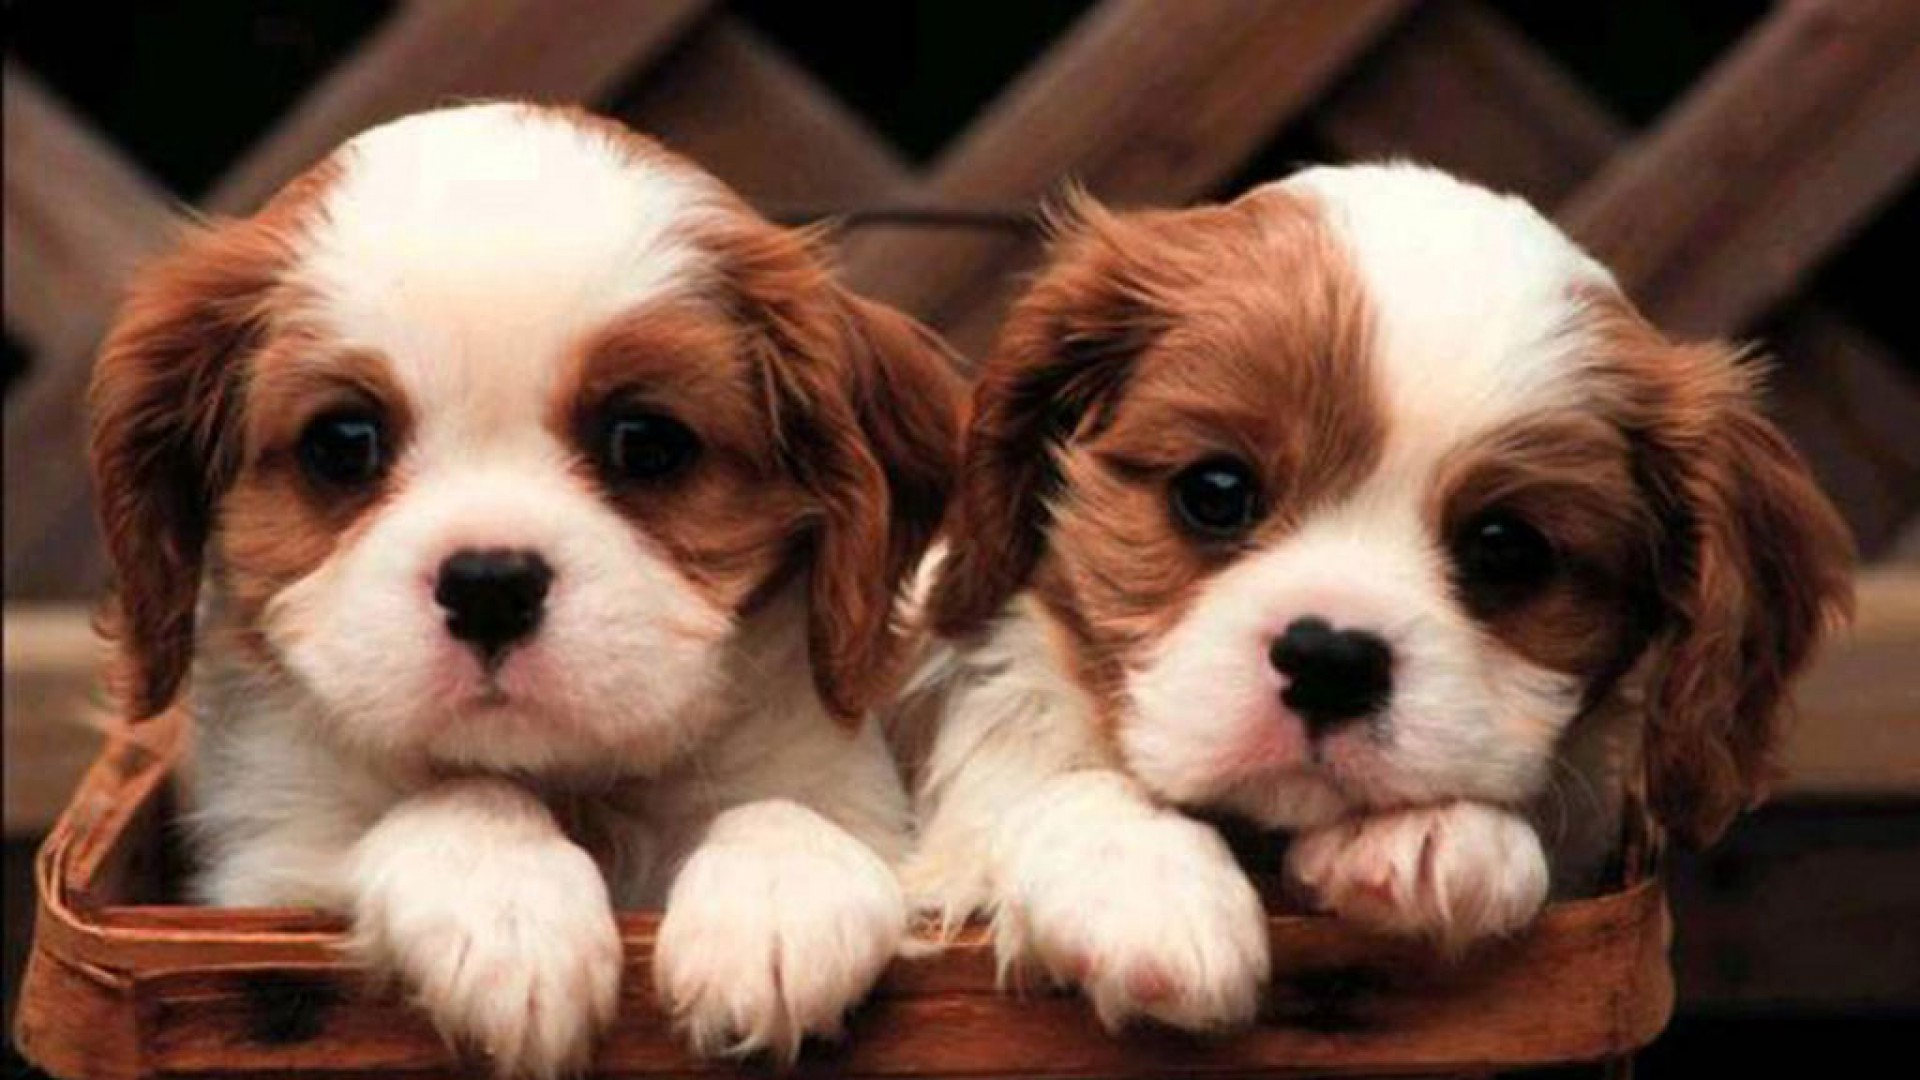 Cute Puppies #13